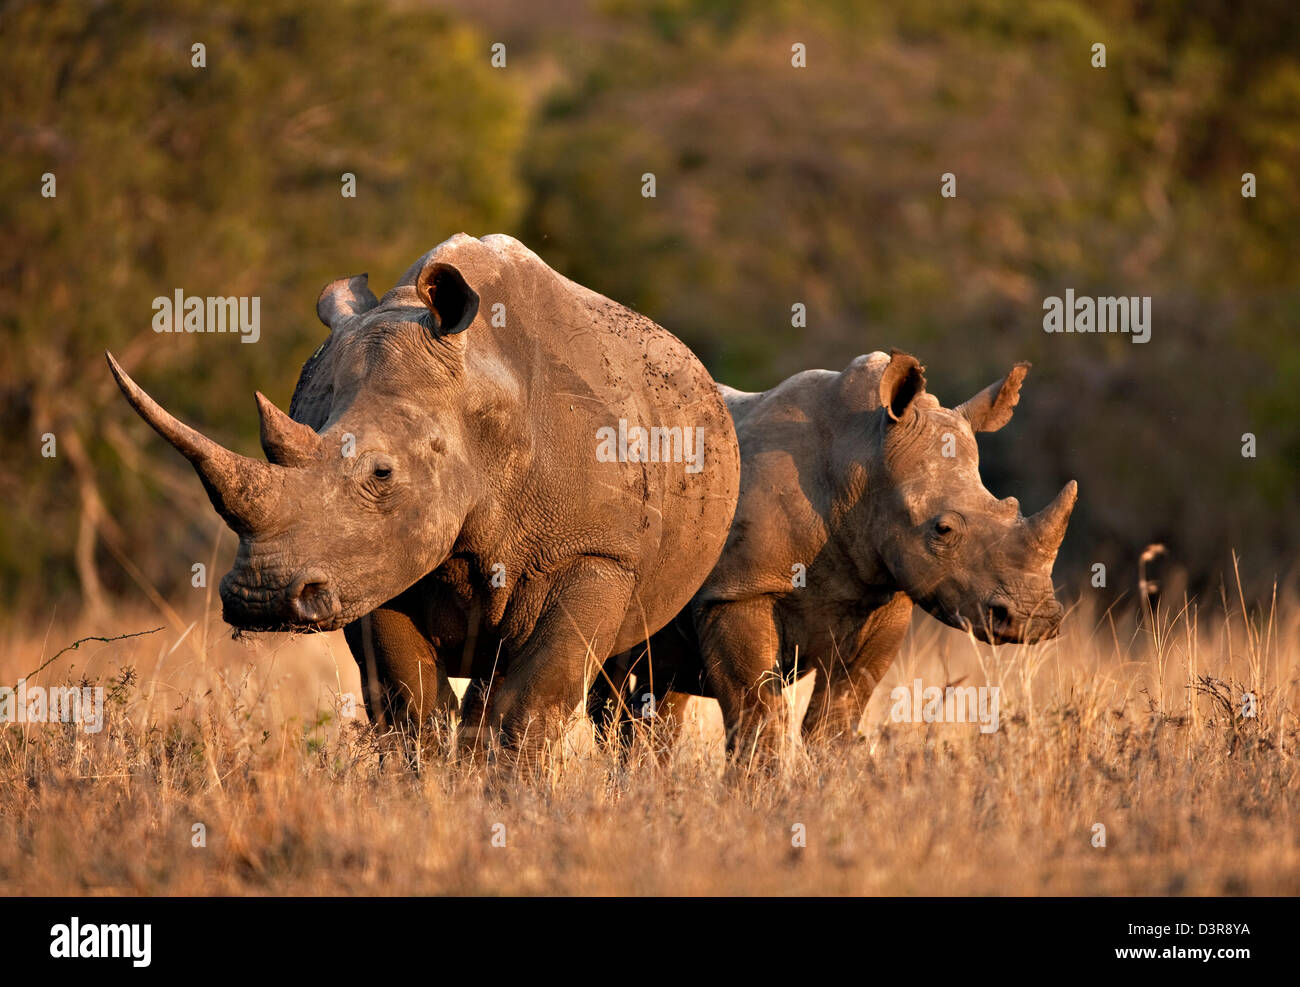 Two White Rhinos on grassland in Phinda Game Reserve, South Africa - Stock Image